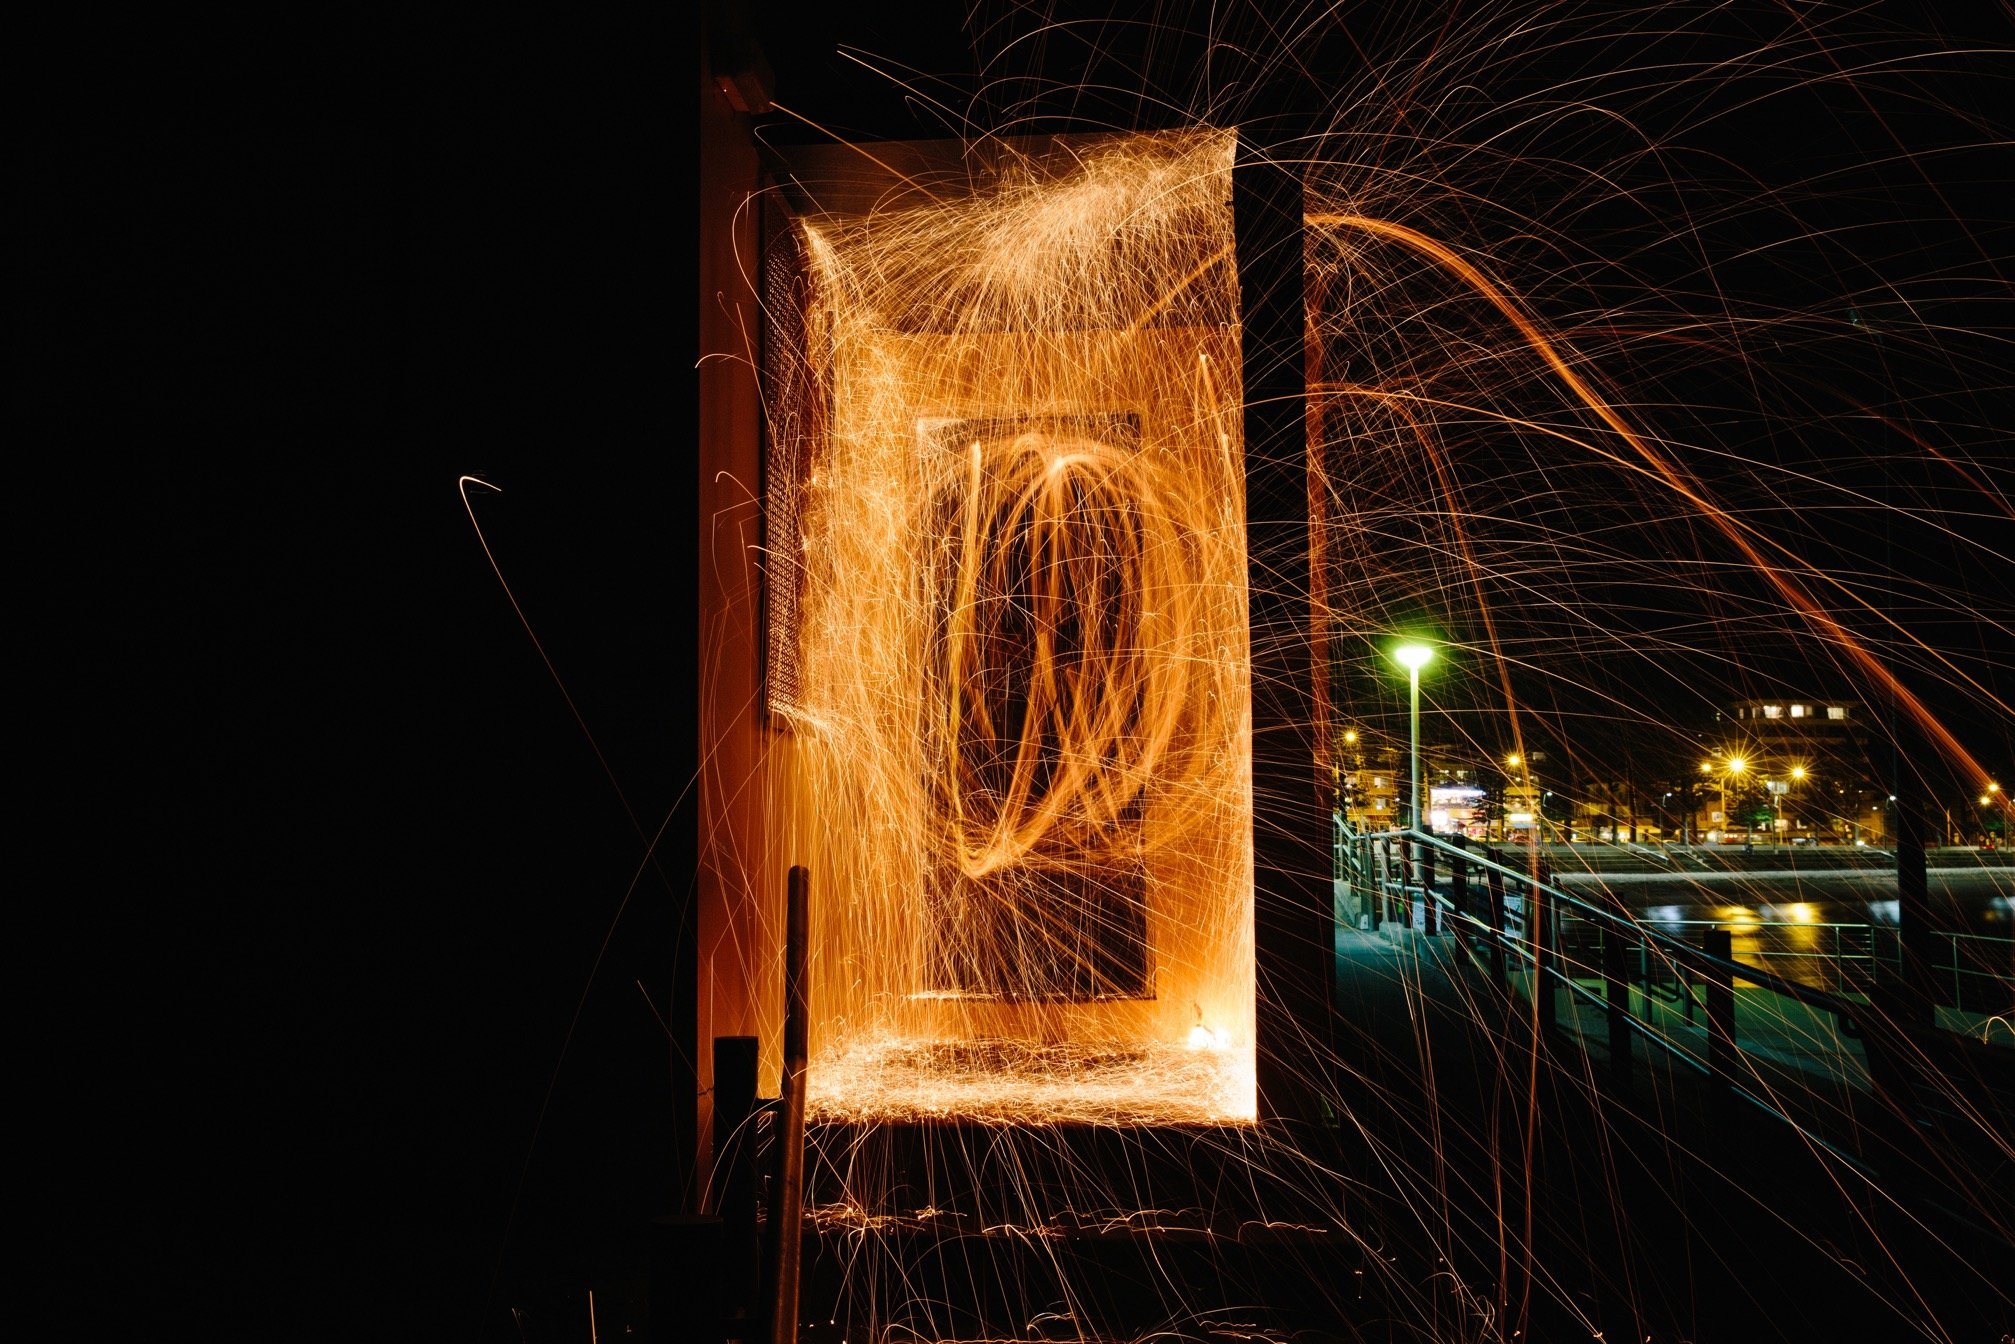 Light Painting, Night Photography & Long Exposures